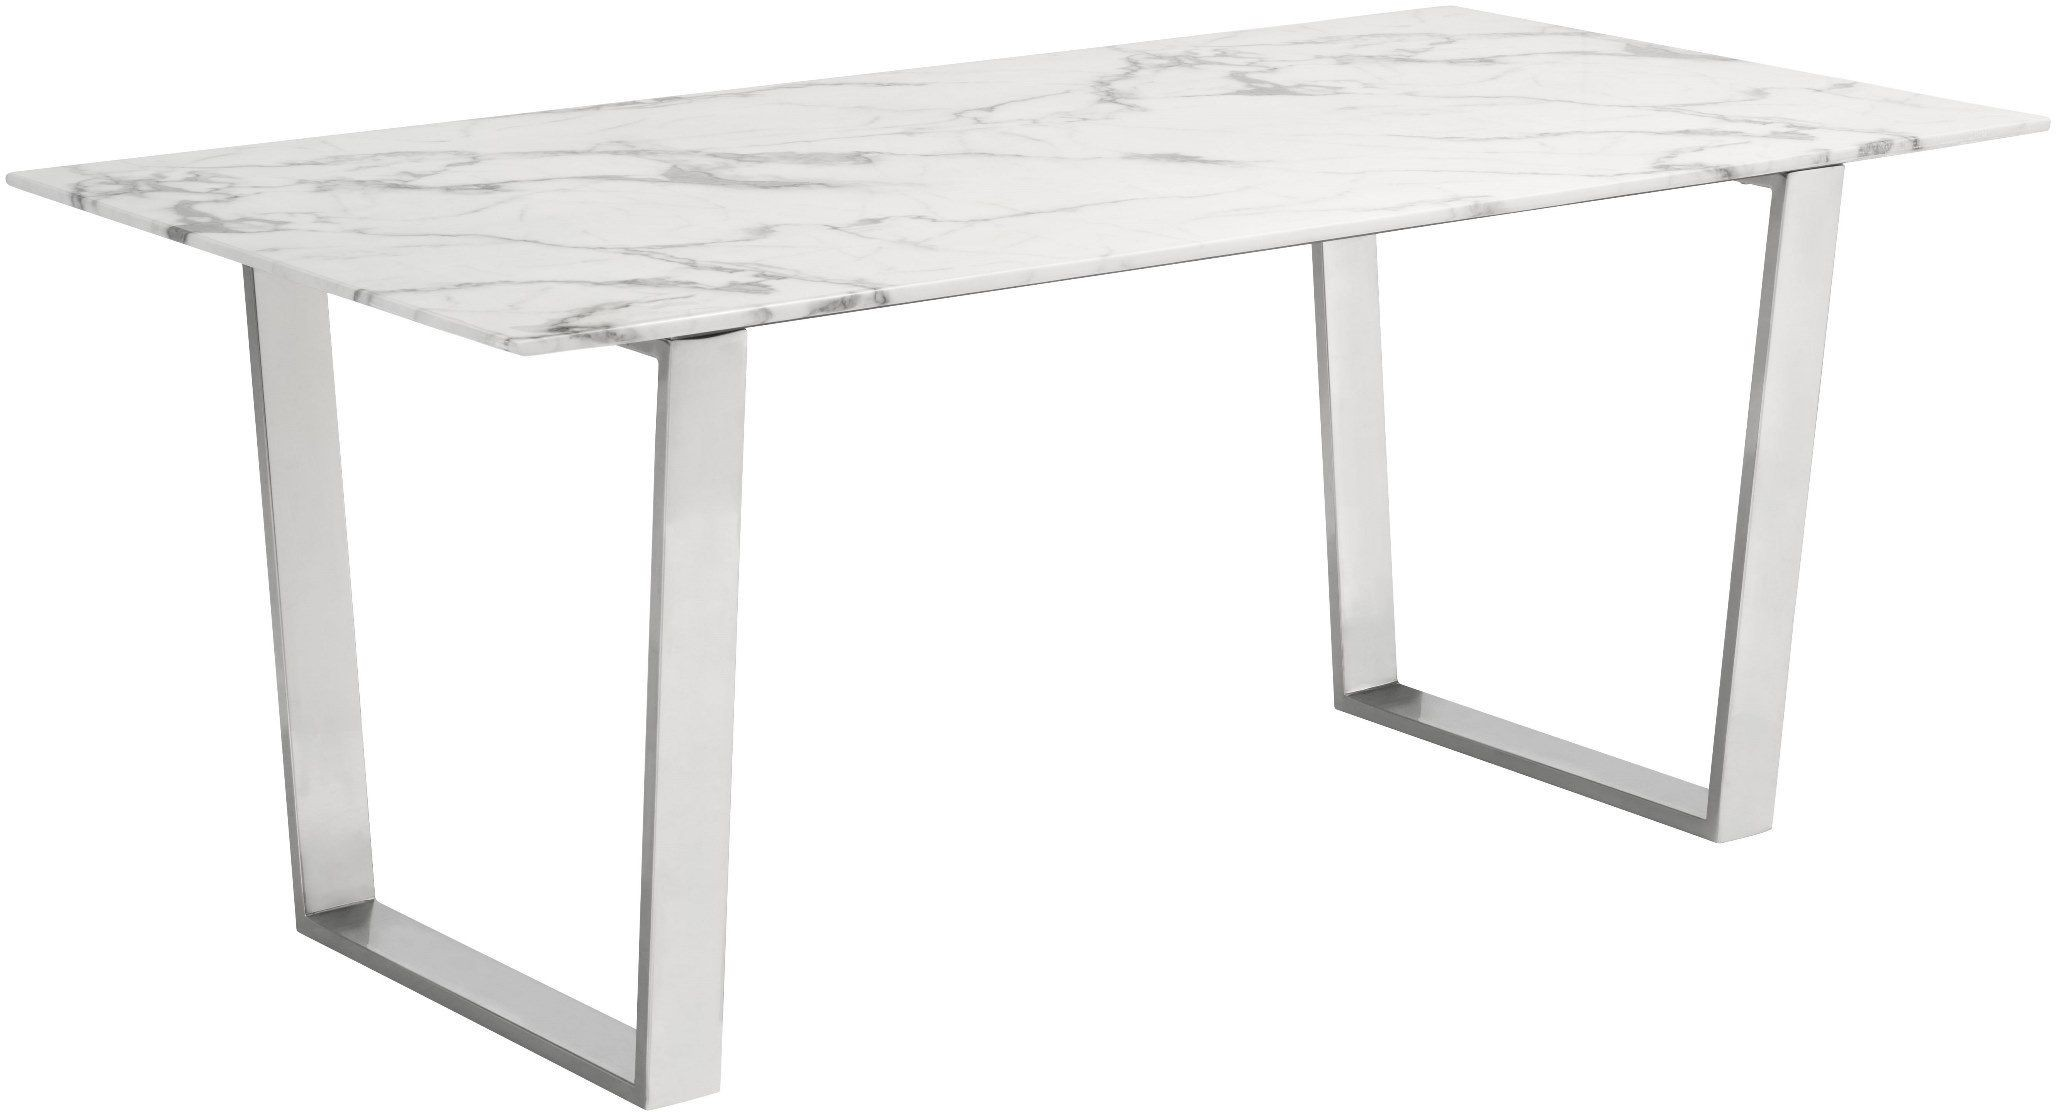 Atlas Stone And Stainless Steel Dining Table From Zuo